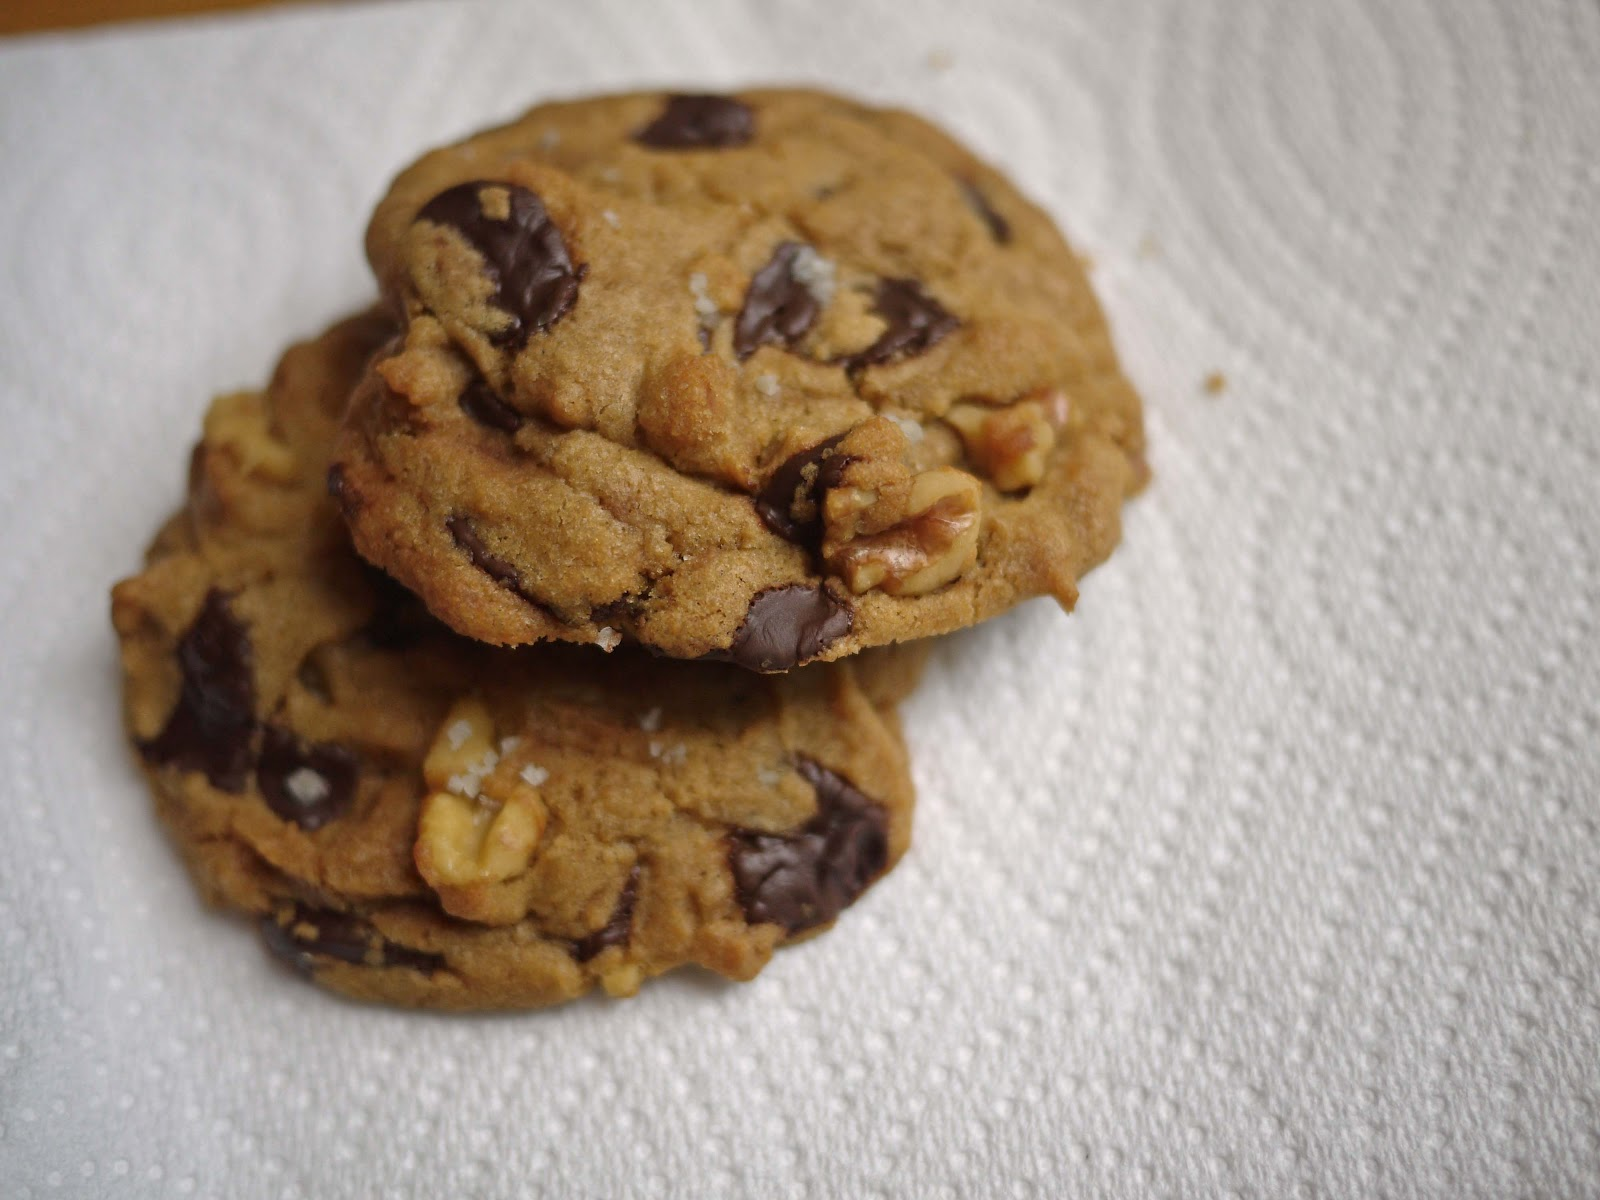 Common Scents Baking: Chocolate Chip Walnut Cookies with Sea Salt